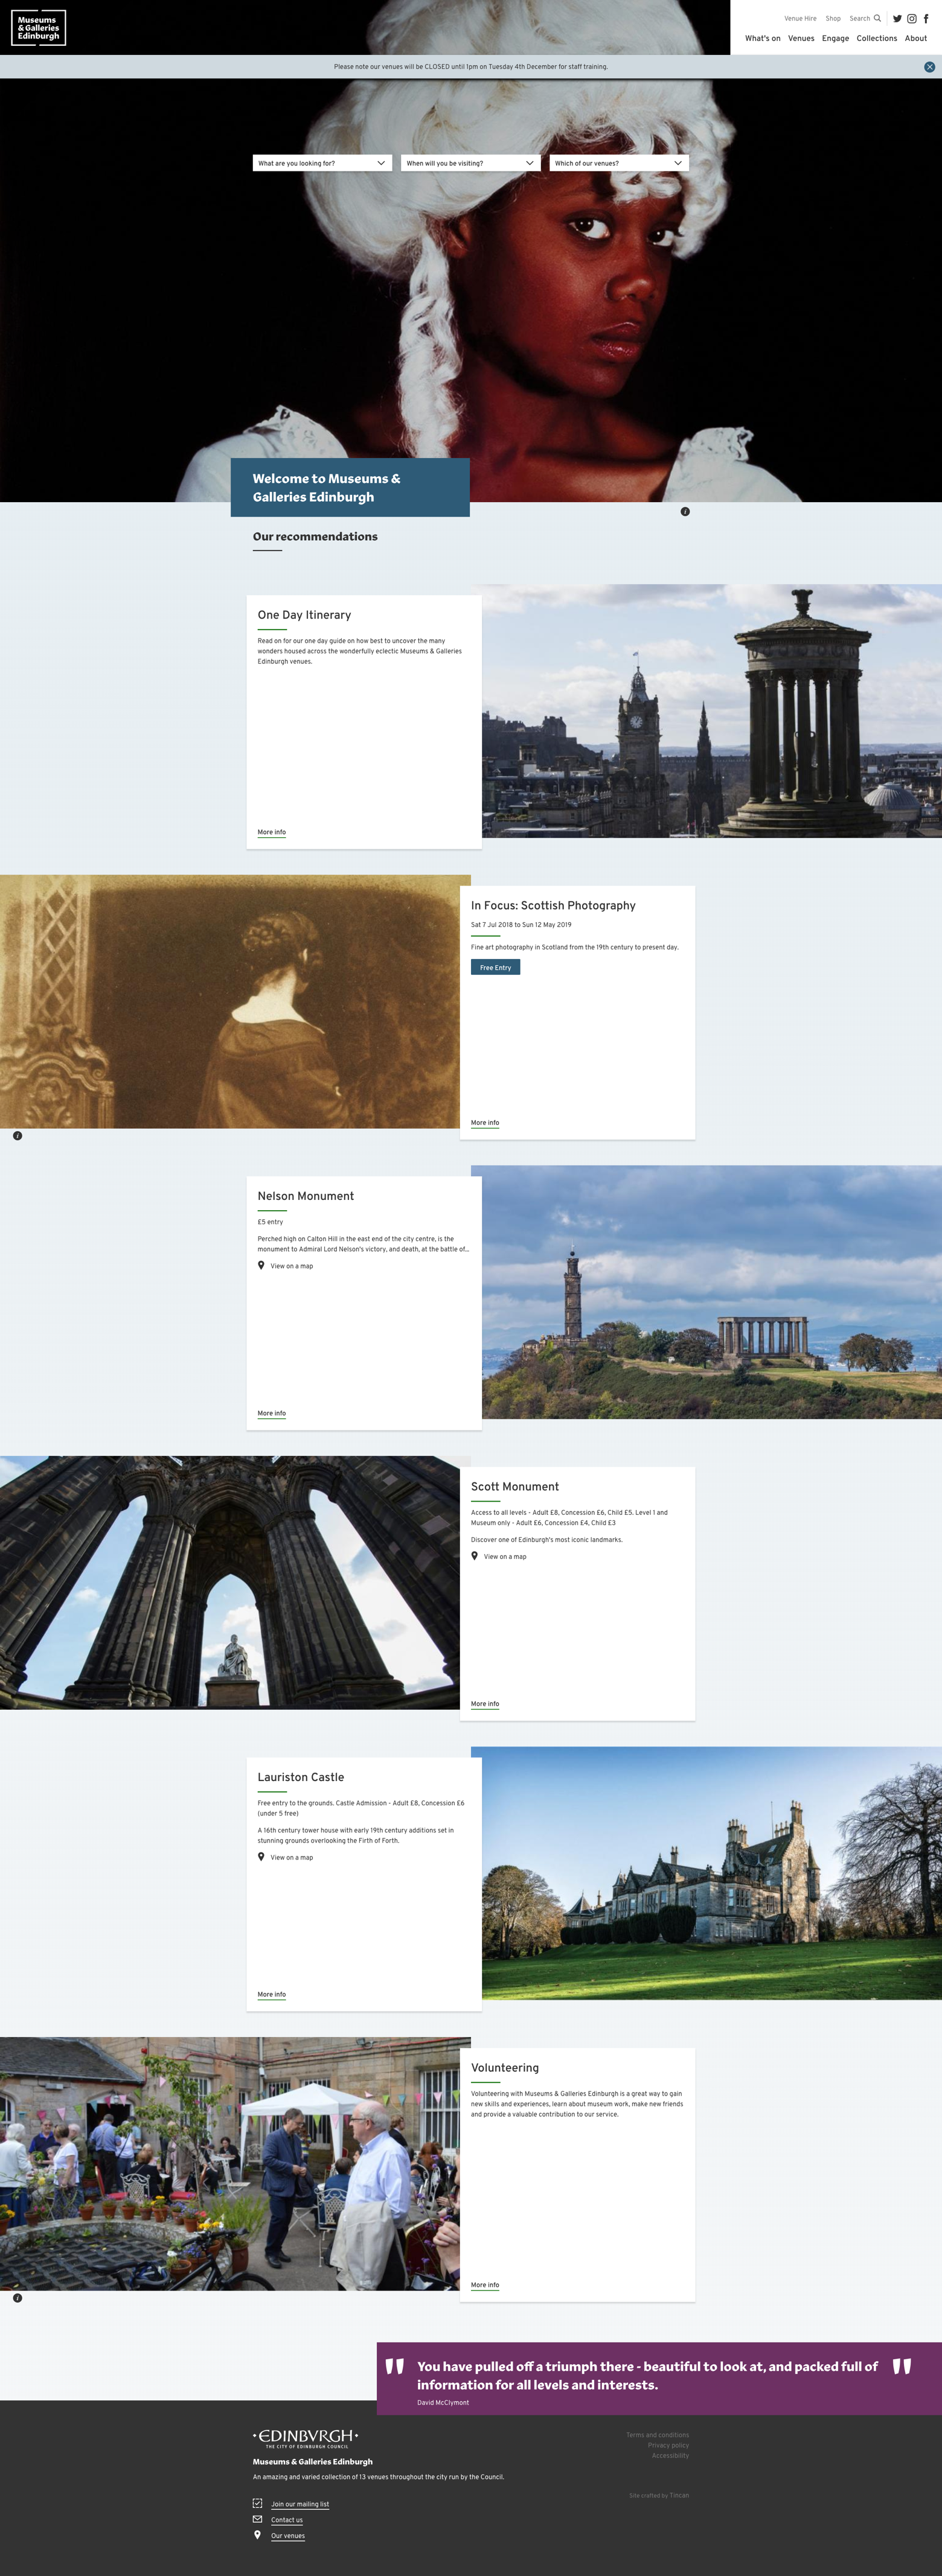 Screenshot of the Museums & Galleries Edinburgh website